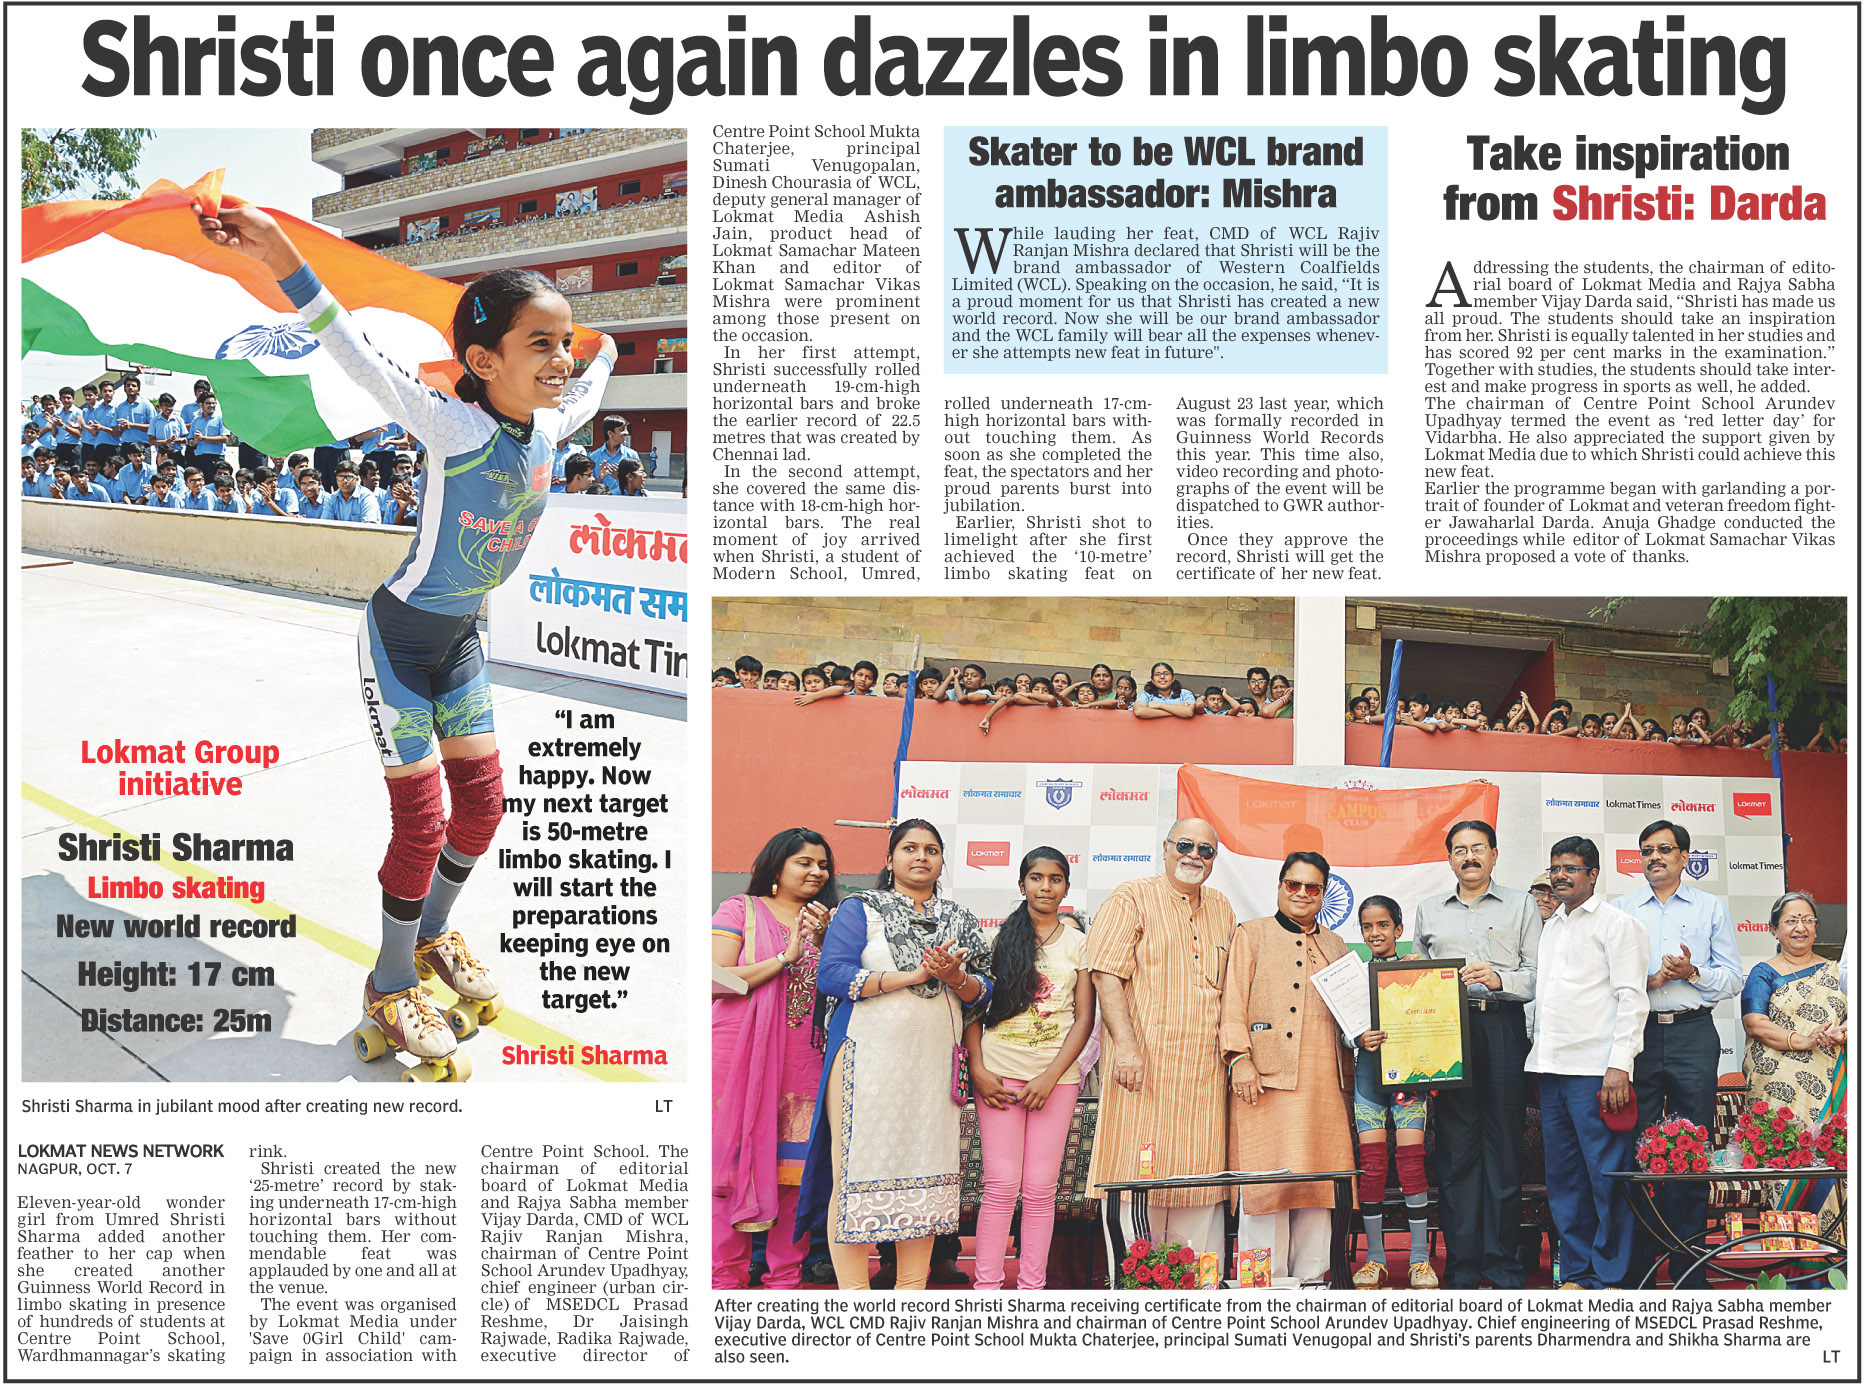 Shristi once again dazzles in limbo skating